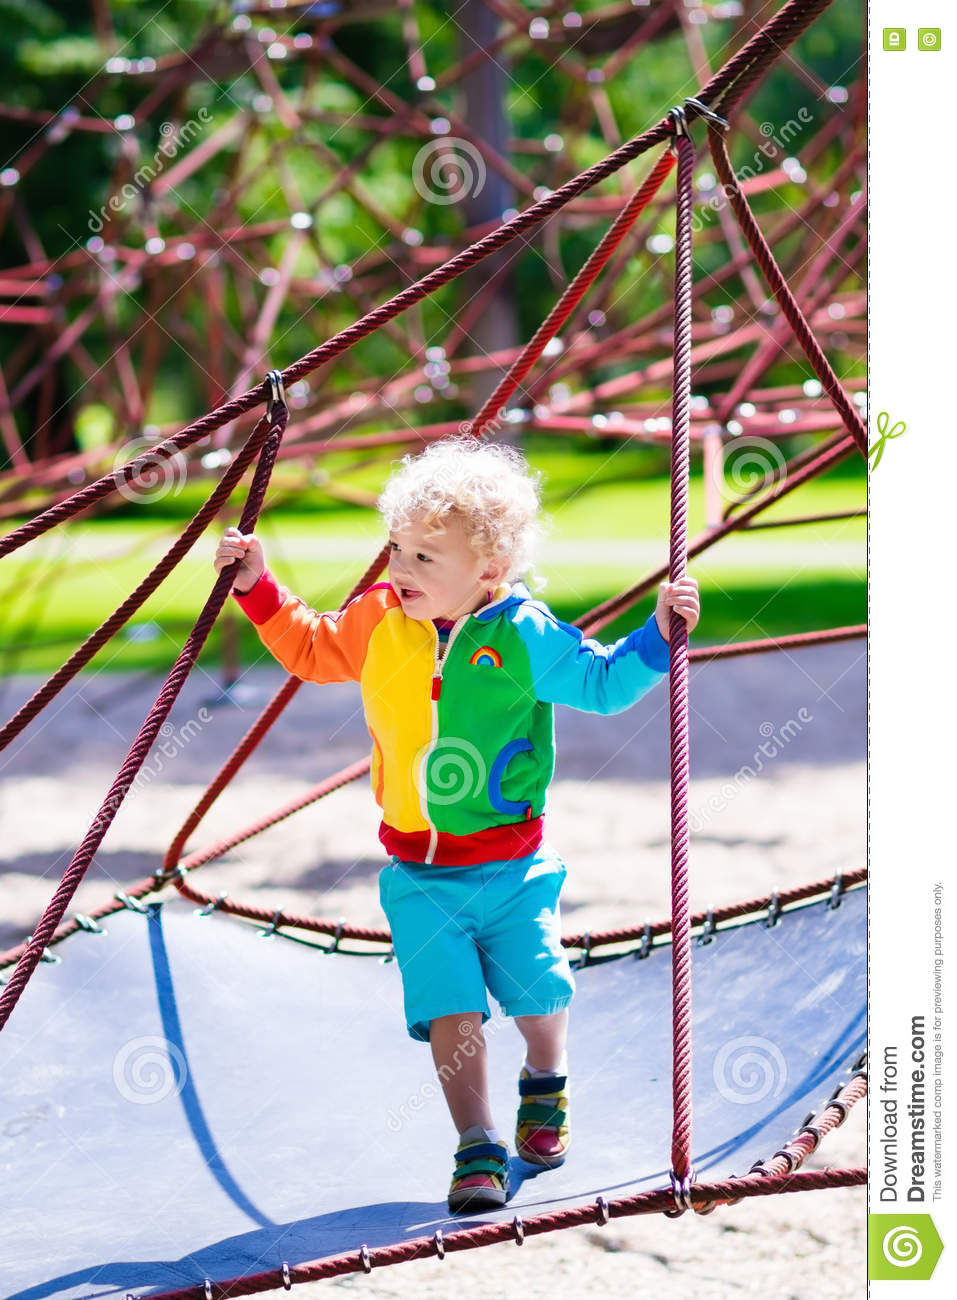 child having fun on school yard playground stock image image of